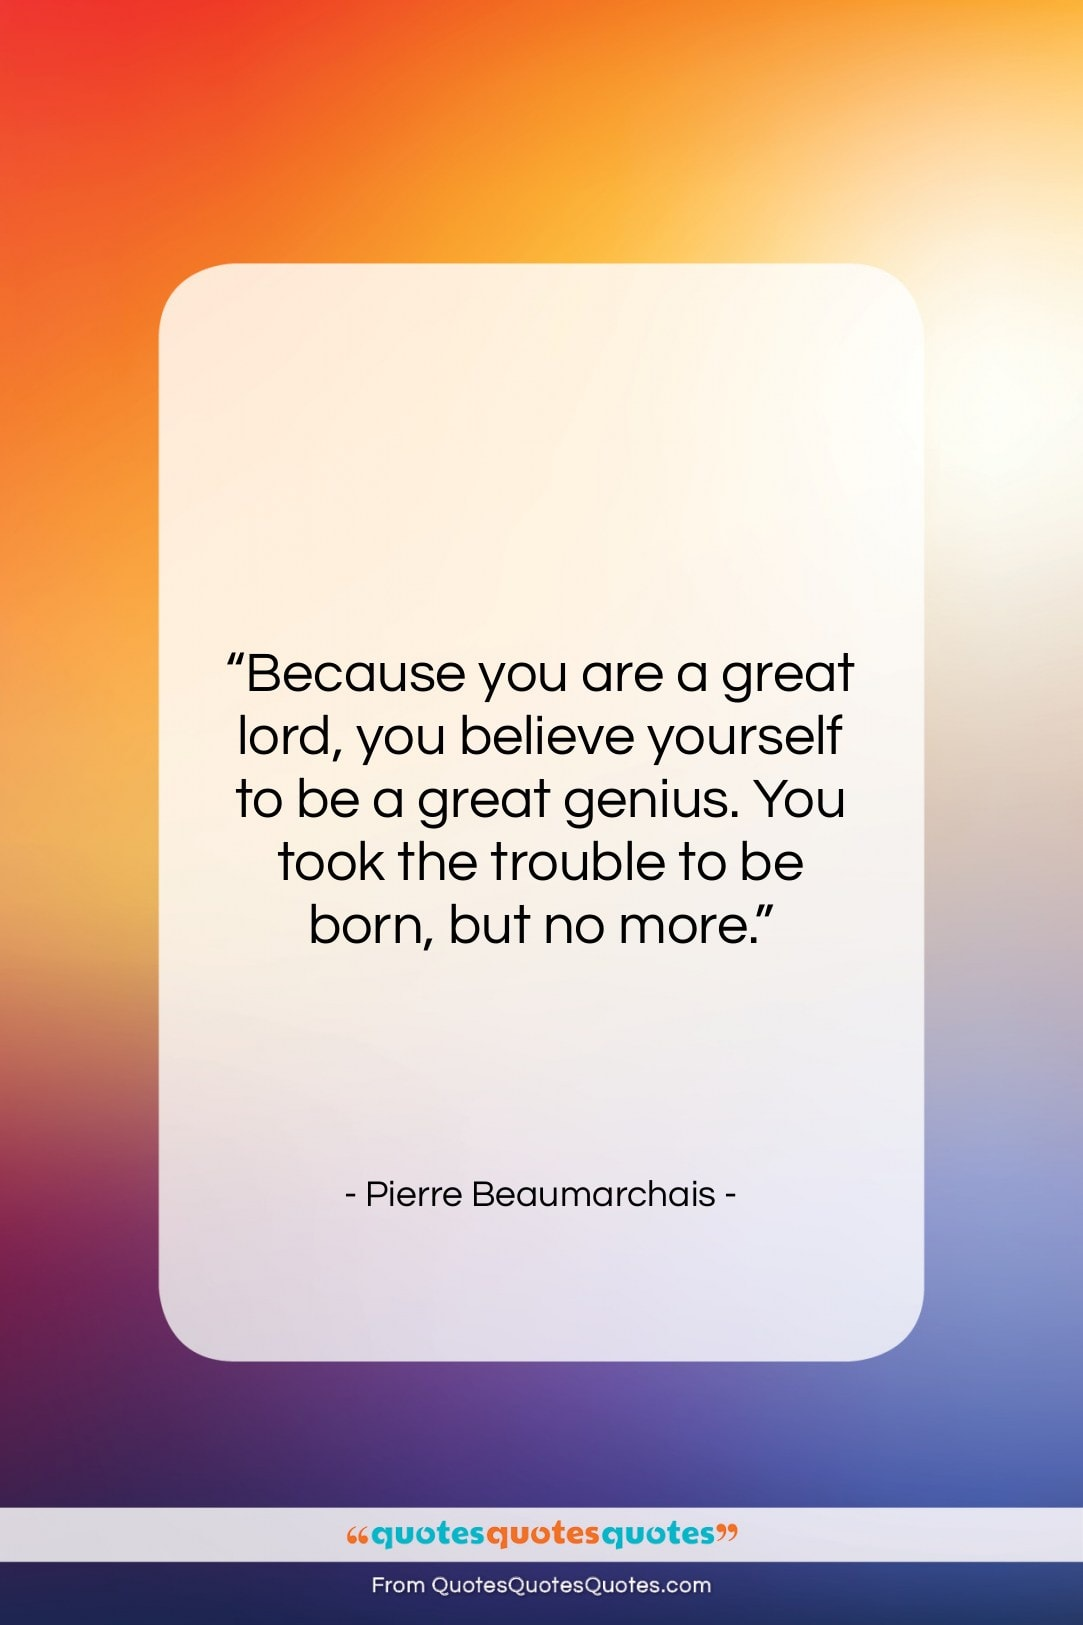 """Pierre Beaumarchais quote: """"Because you are a great lord, you…""""- at QuotesQuotesQuotes.com"""